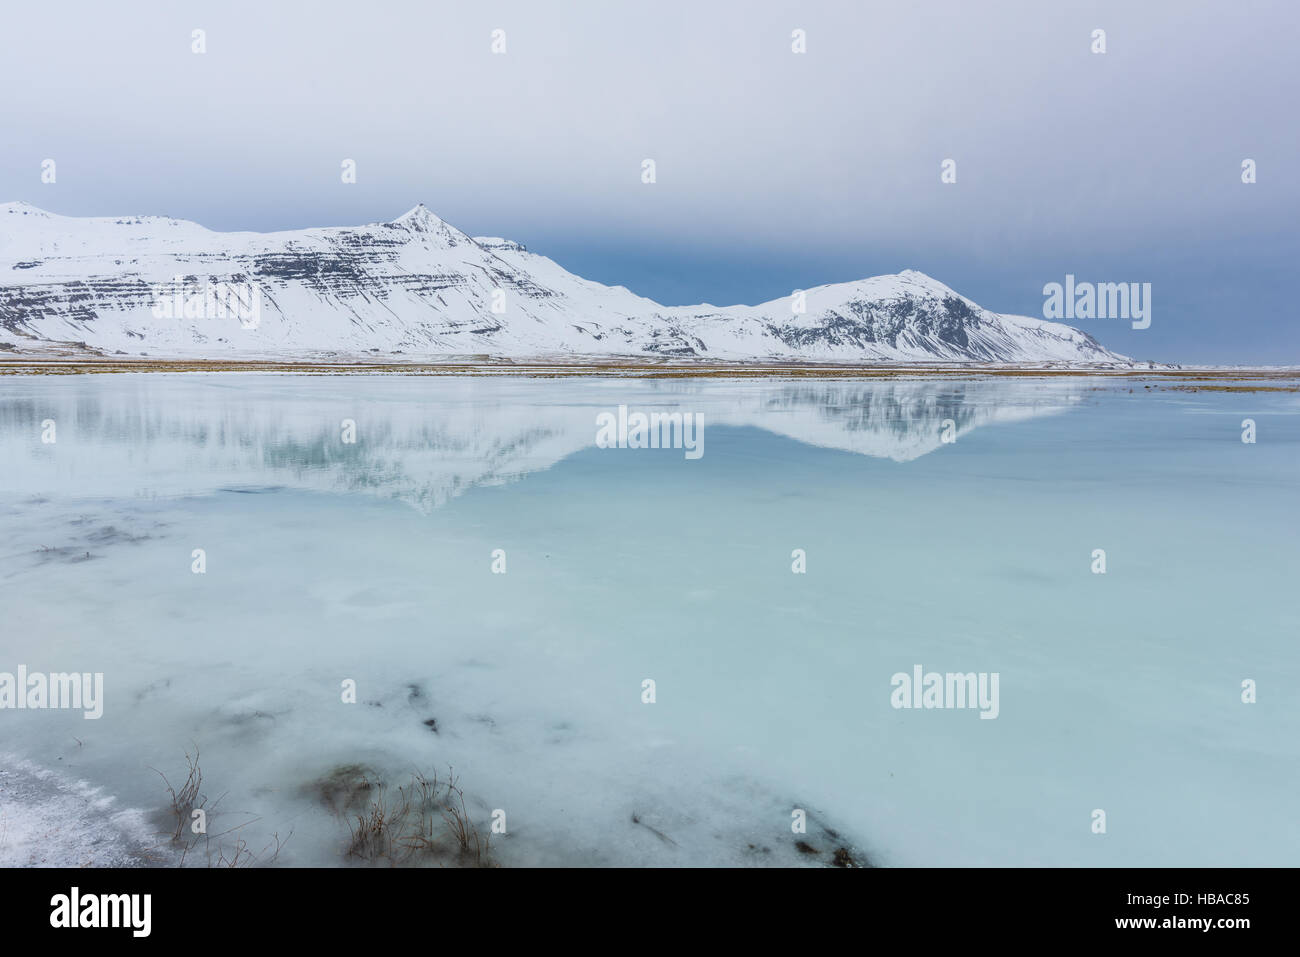 Iceland mountains east fjords in wintertime - Stock Image